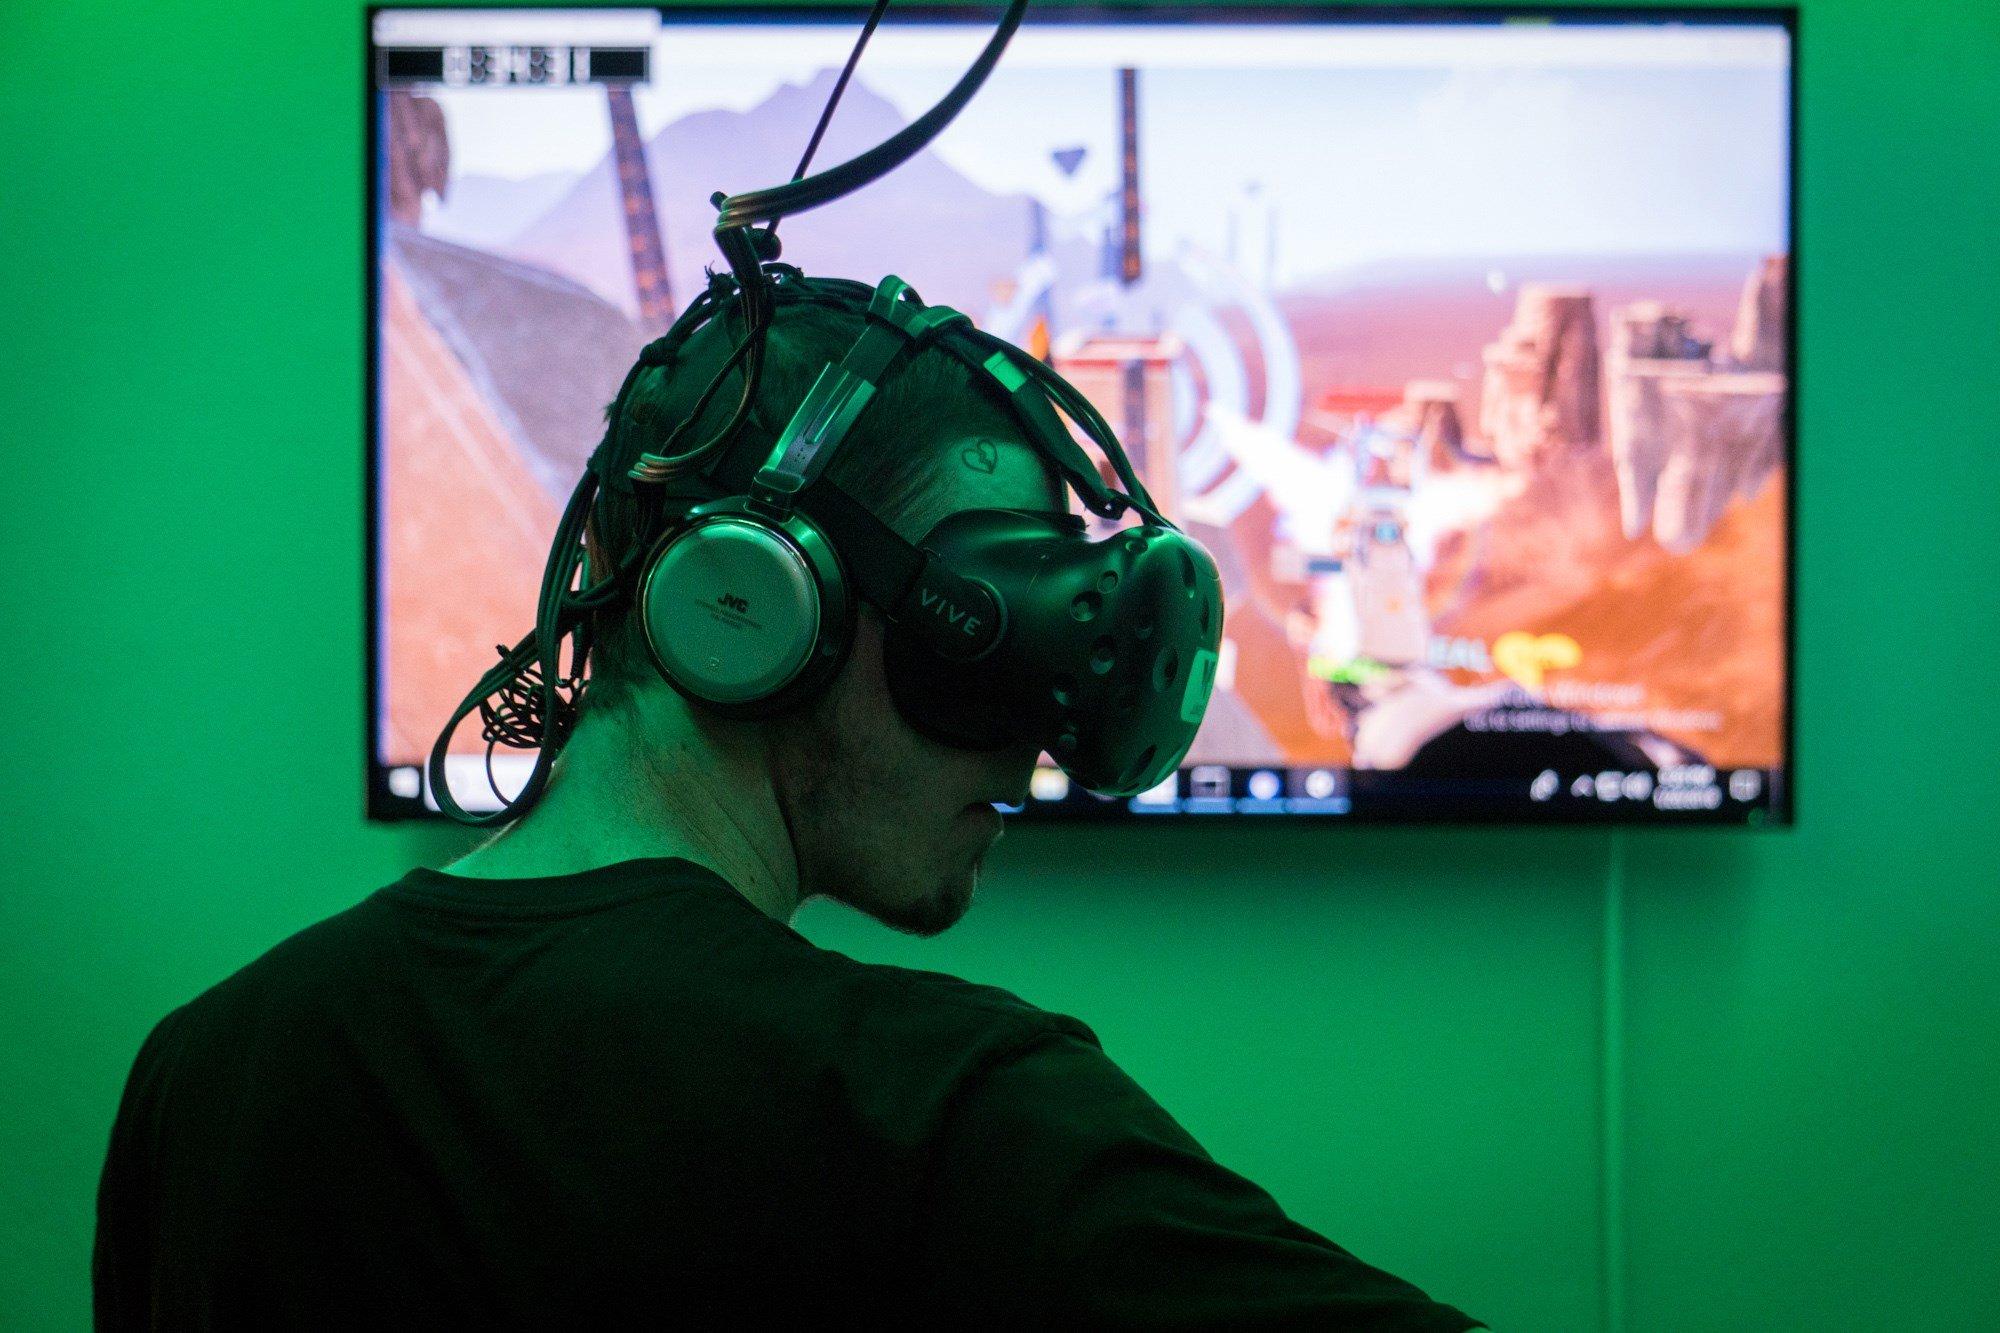 """Tyler Powell, a first-time VR player, paid $1 per minute to be fully immersed in the game """"Skyfront"""" with his friends. (Source: Daria Kadovik/Cronkite News)"""